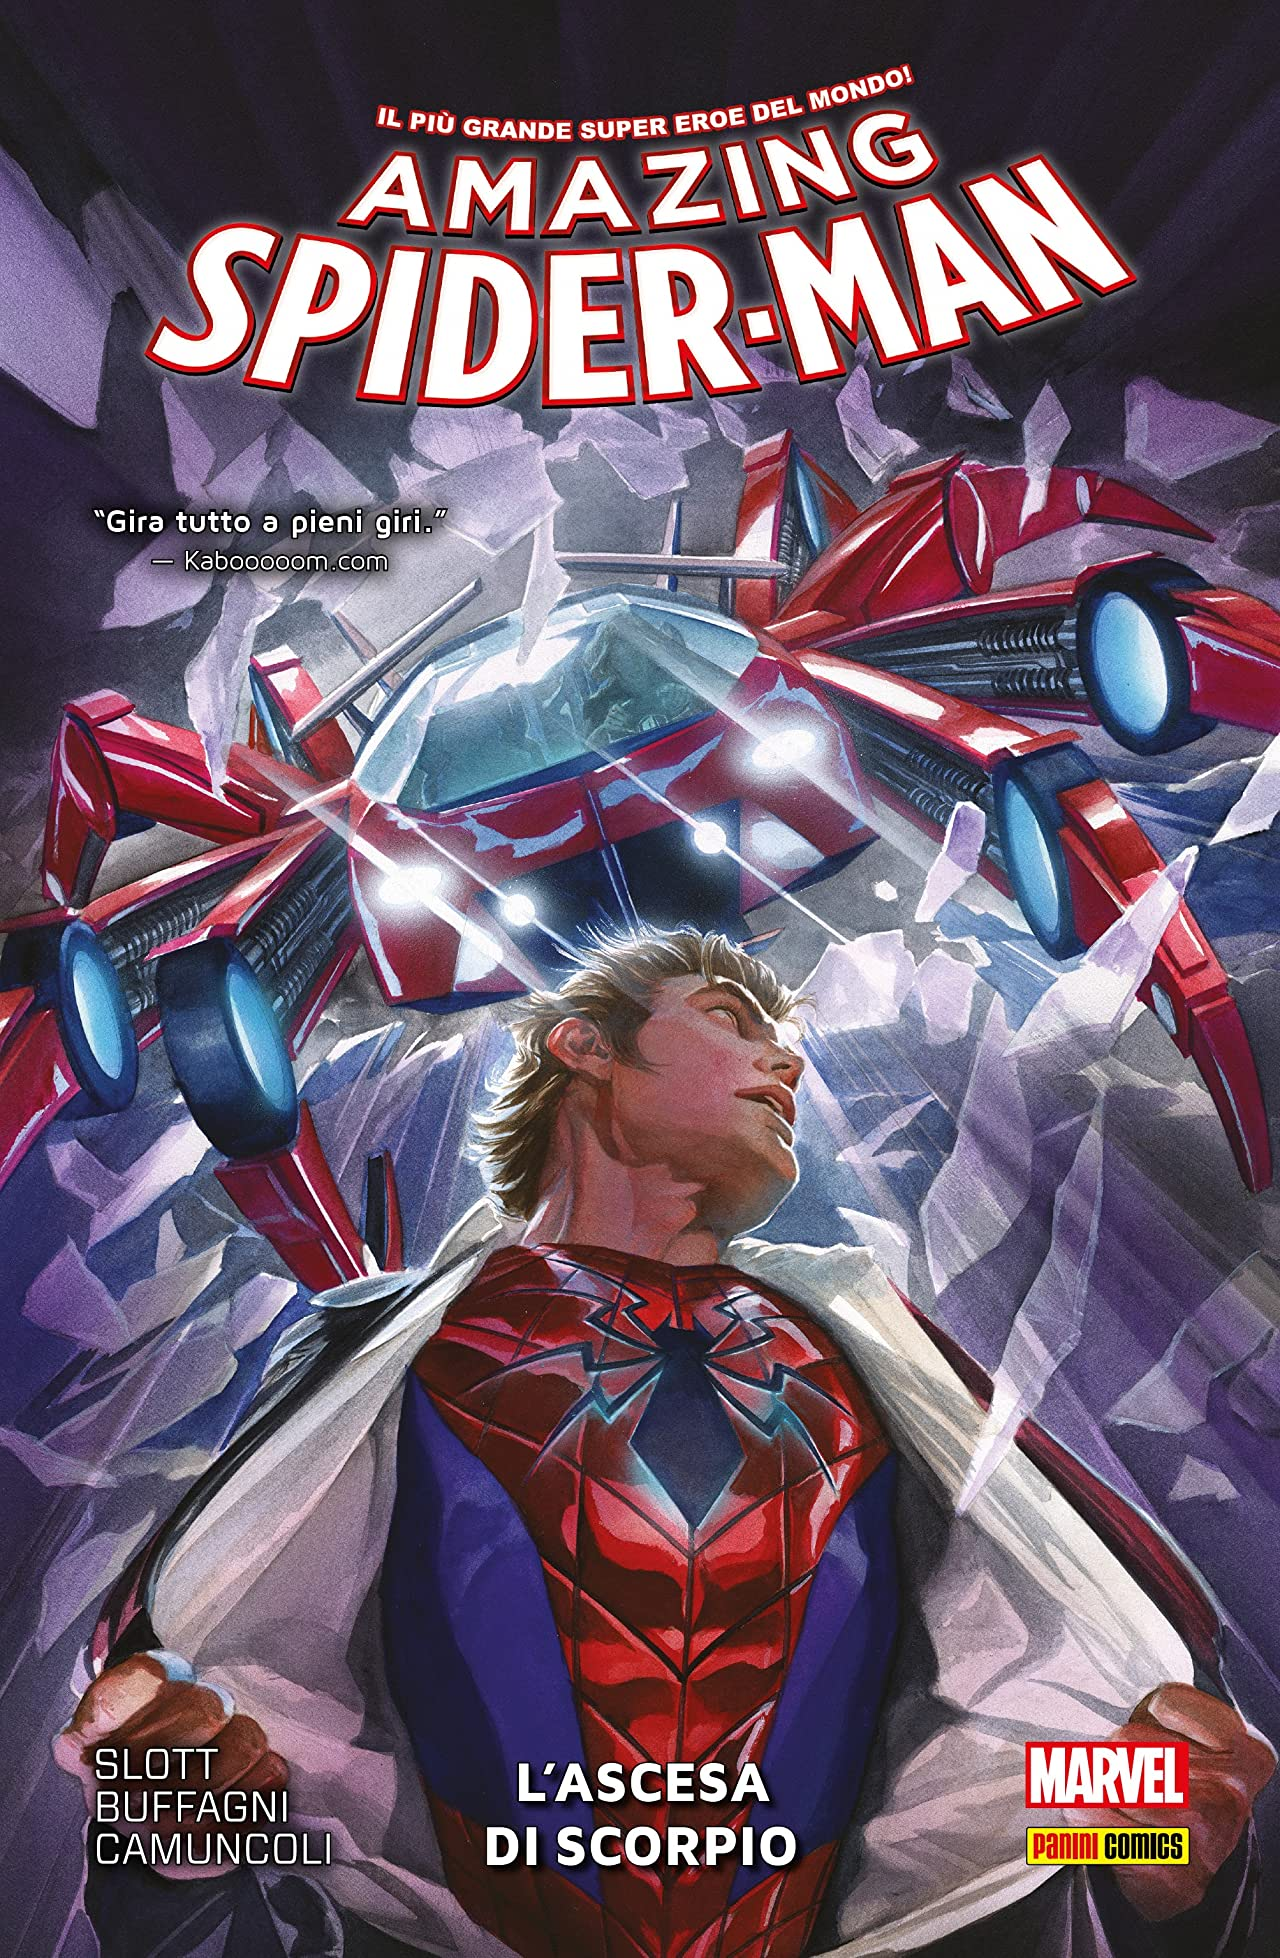 Amazing Spider-Man Vol. 2: L'ascesa Di Scorpio